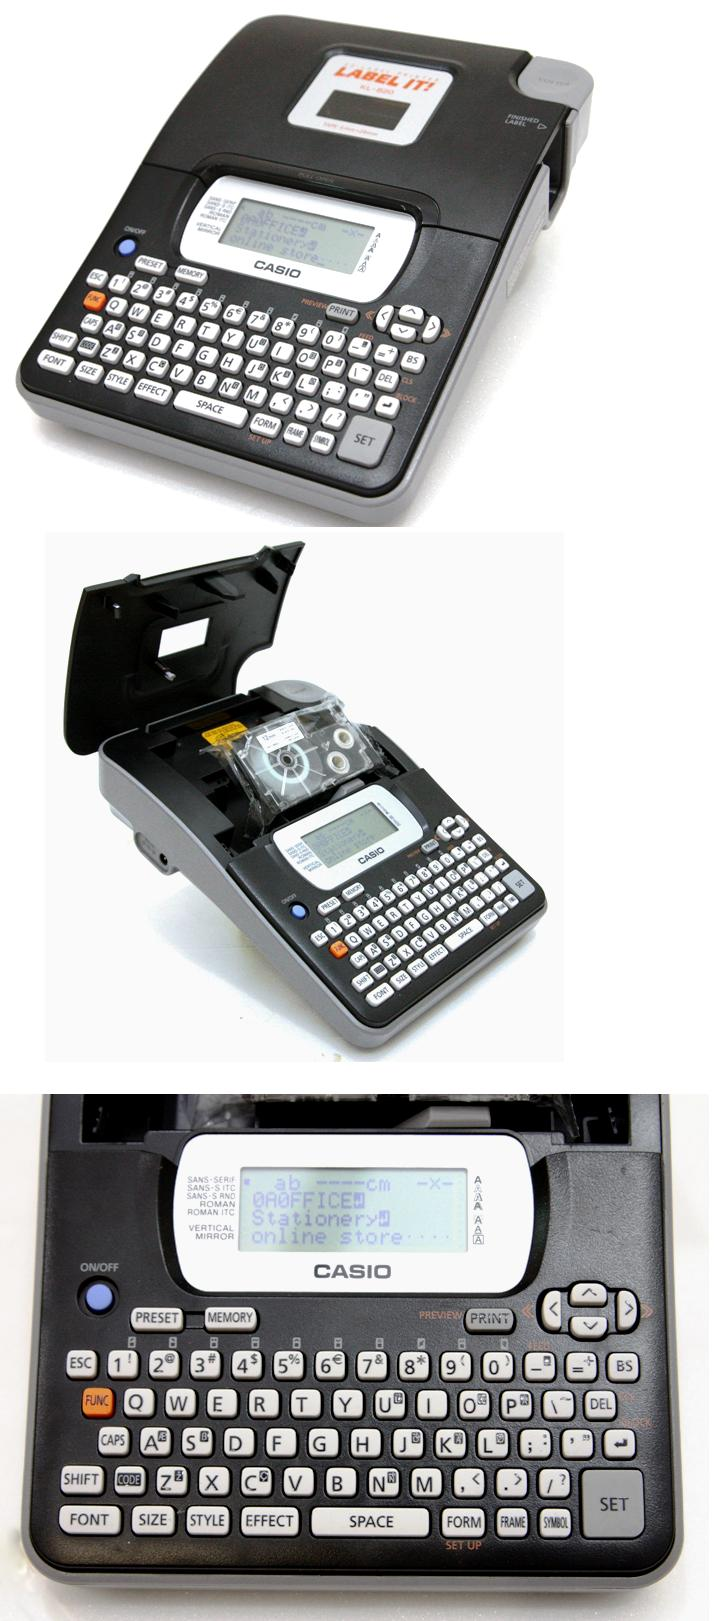 Casio Label Printer KL-820